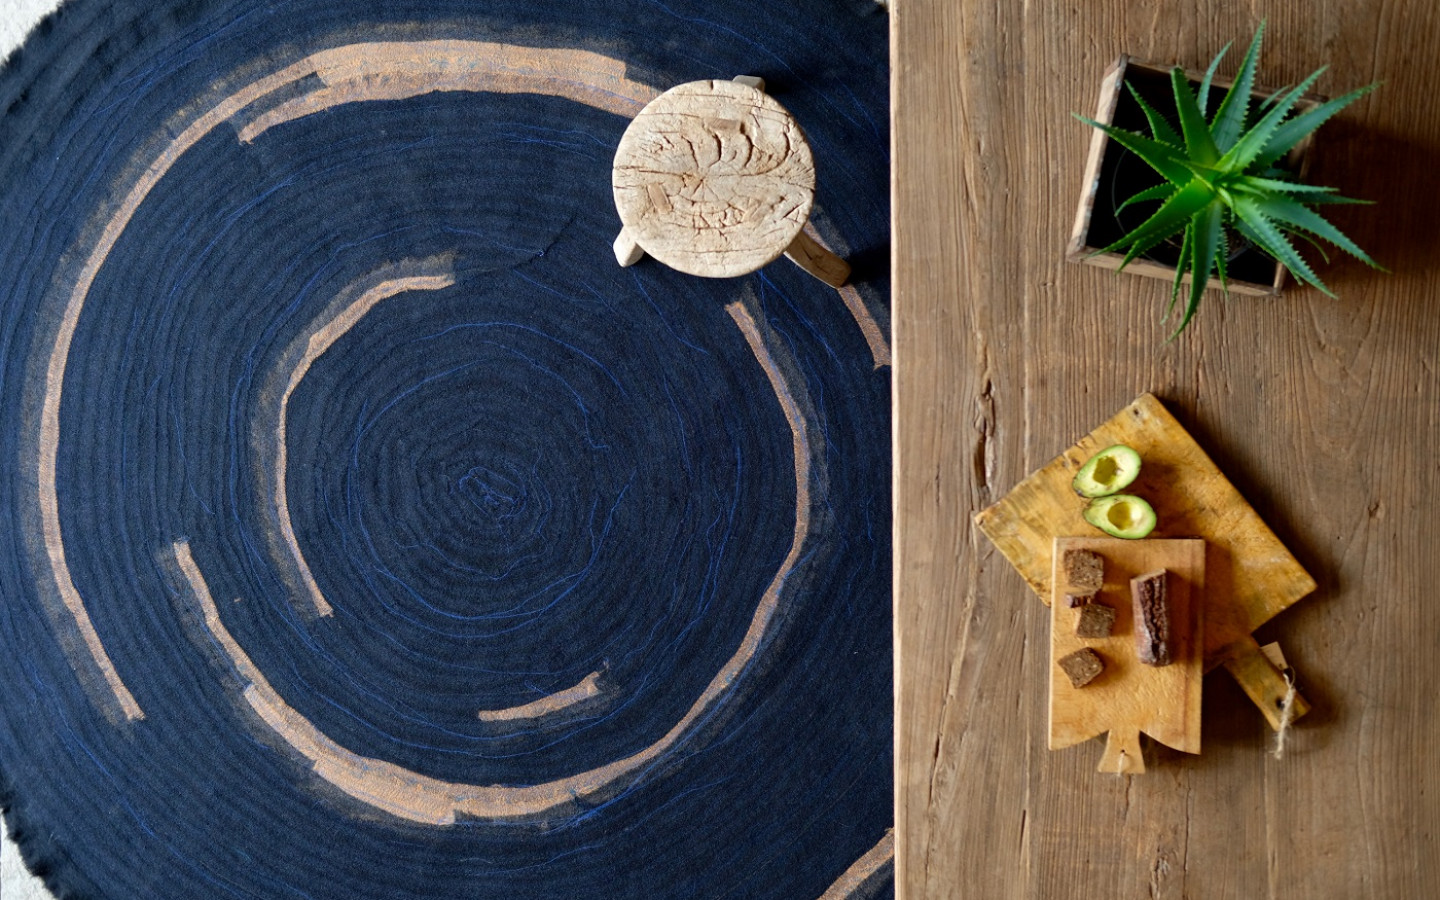 13RUGS combines woollen selvedges from ROHI's fabric production to make unique carpets. © Green Product Award